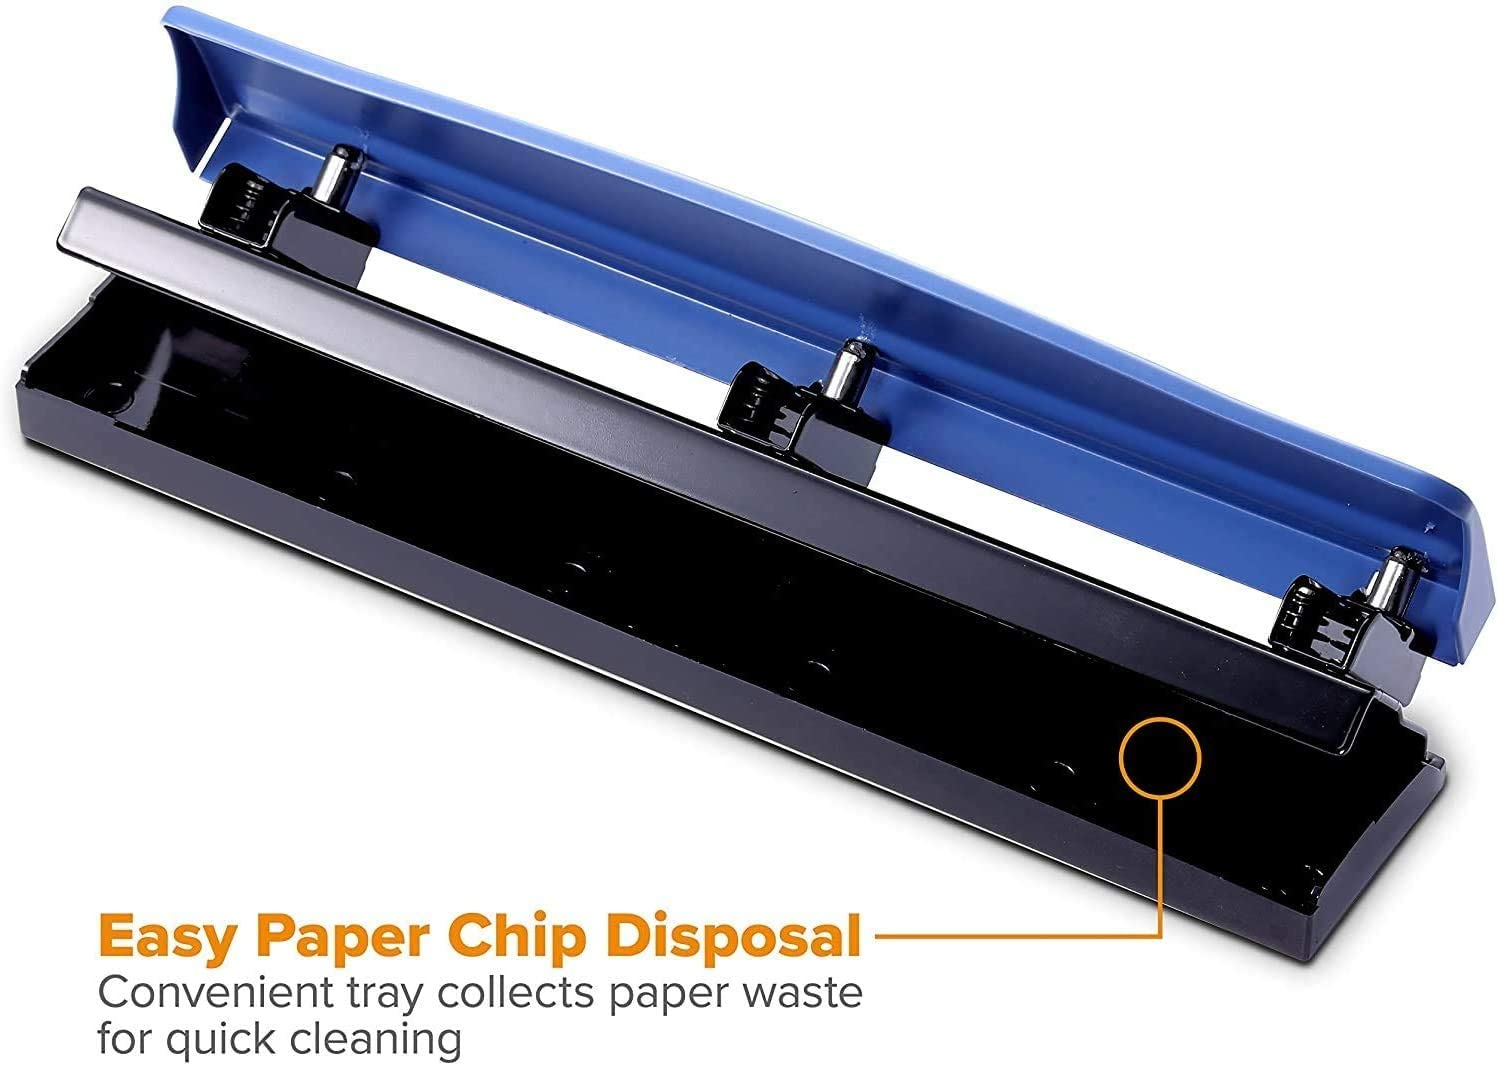 12 Sheets KT-HP12-BLUE Bostitch 3 Hole Punch Navy Blue